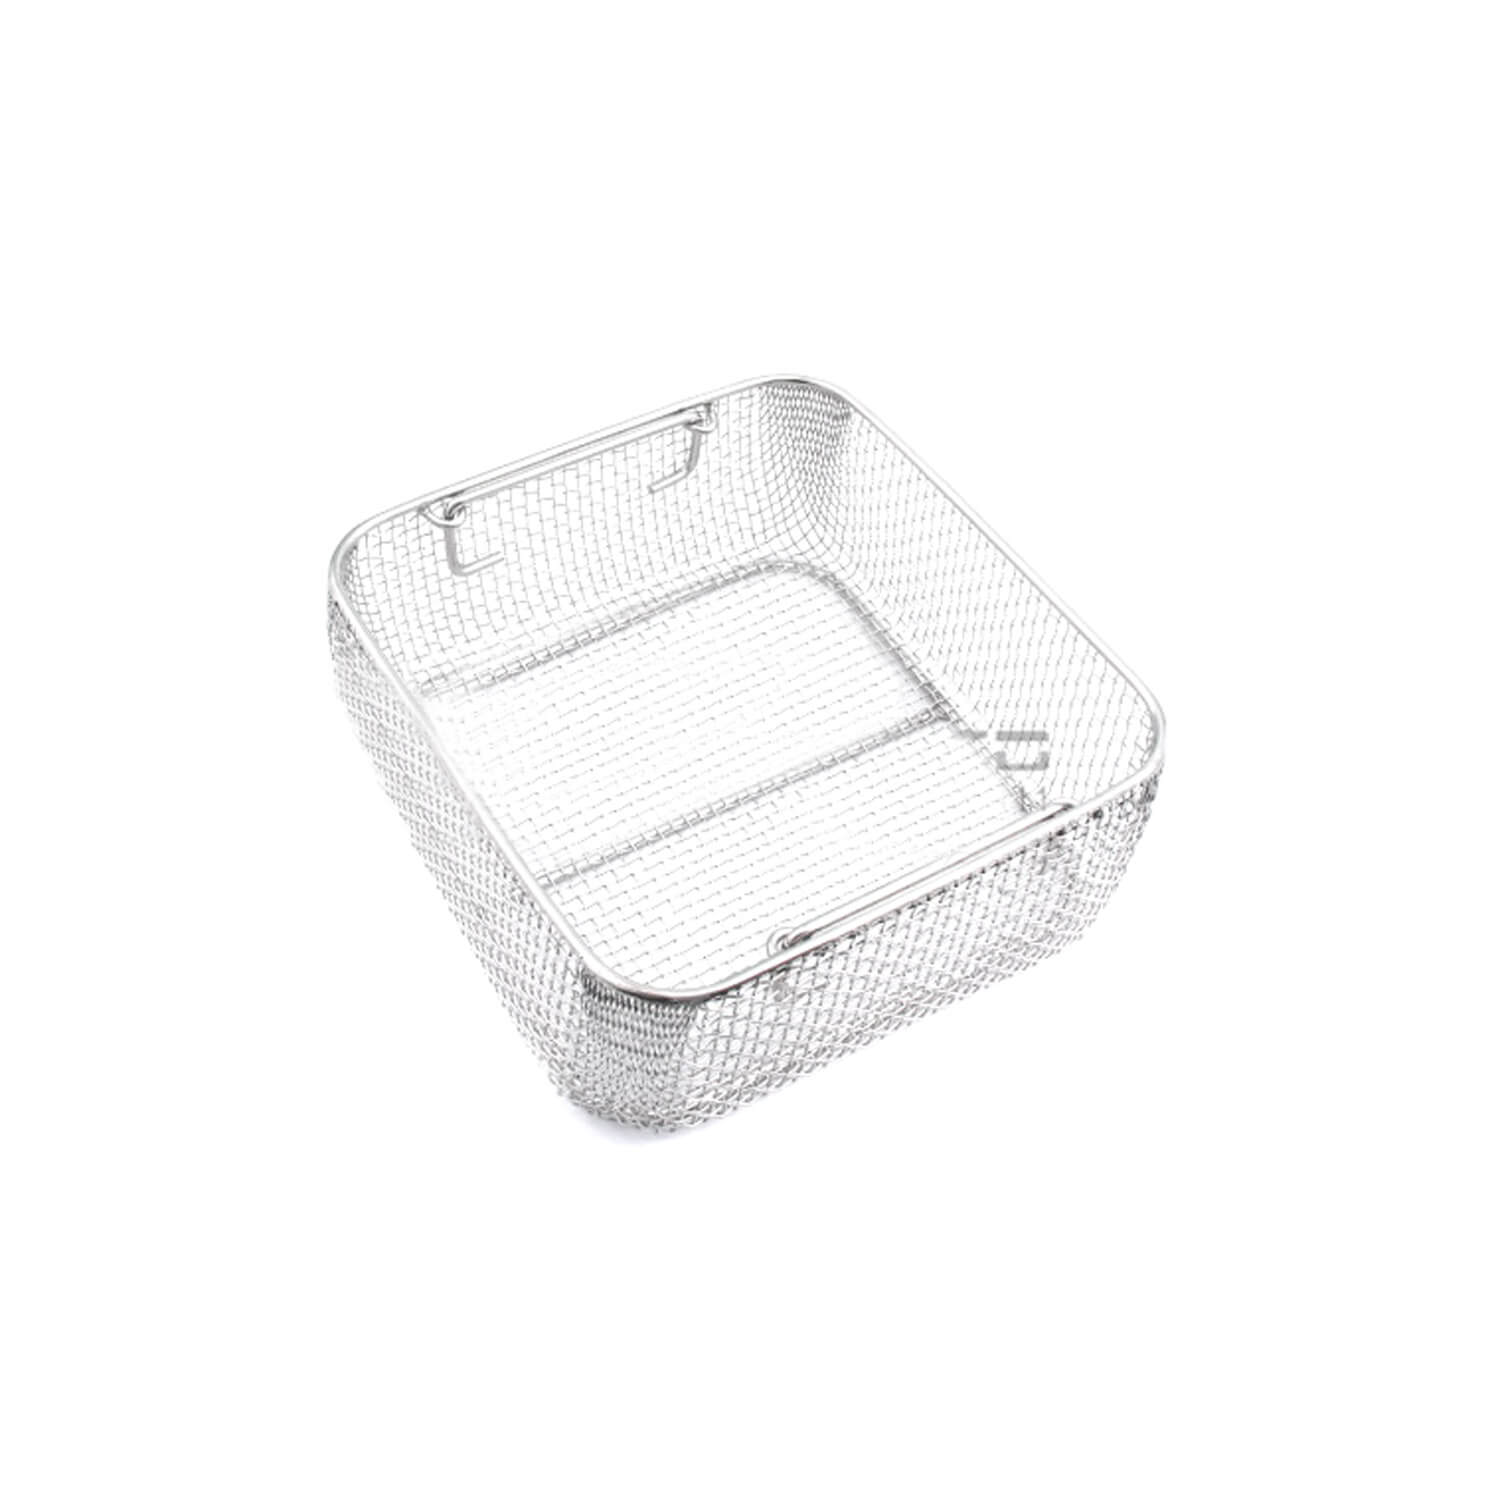 "Sterilizing Trays Micro Tray Drop Handle 10 X 9.5"" X 4"" Mesh Box Dn-320"